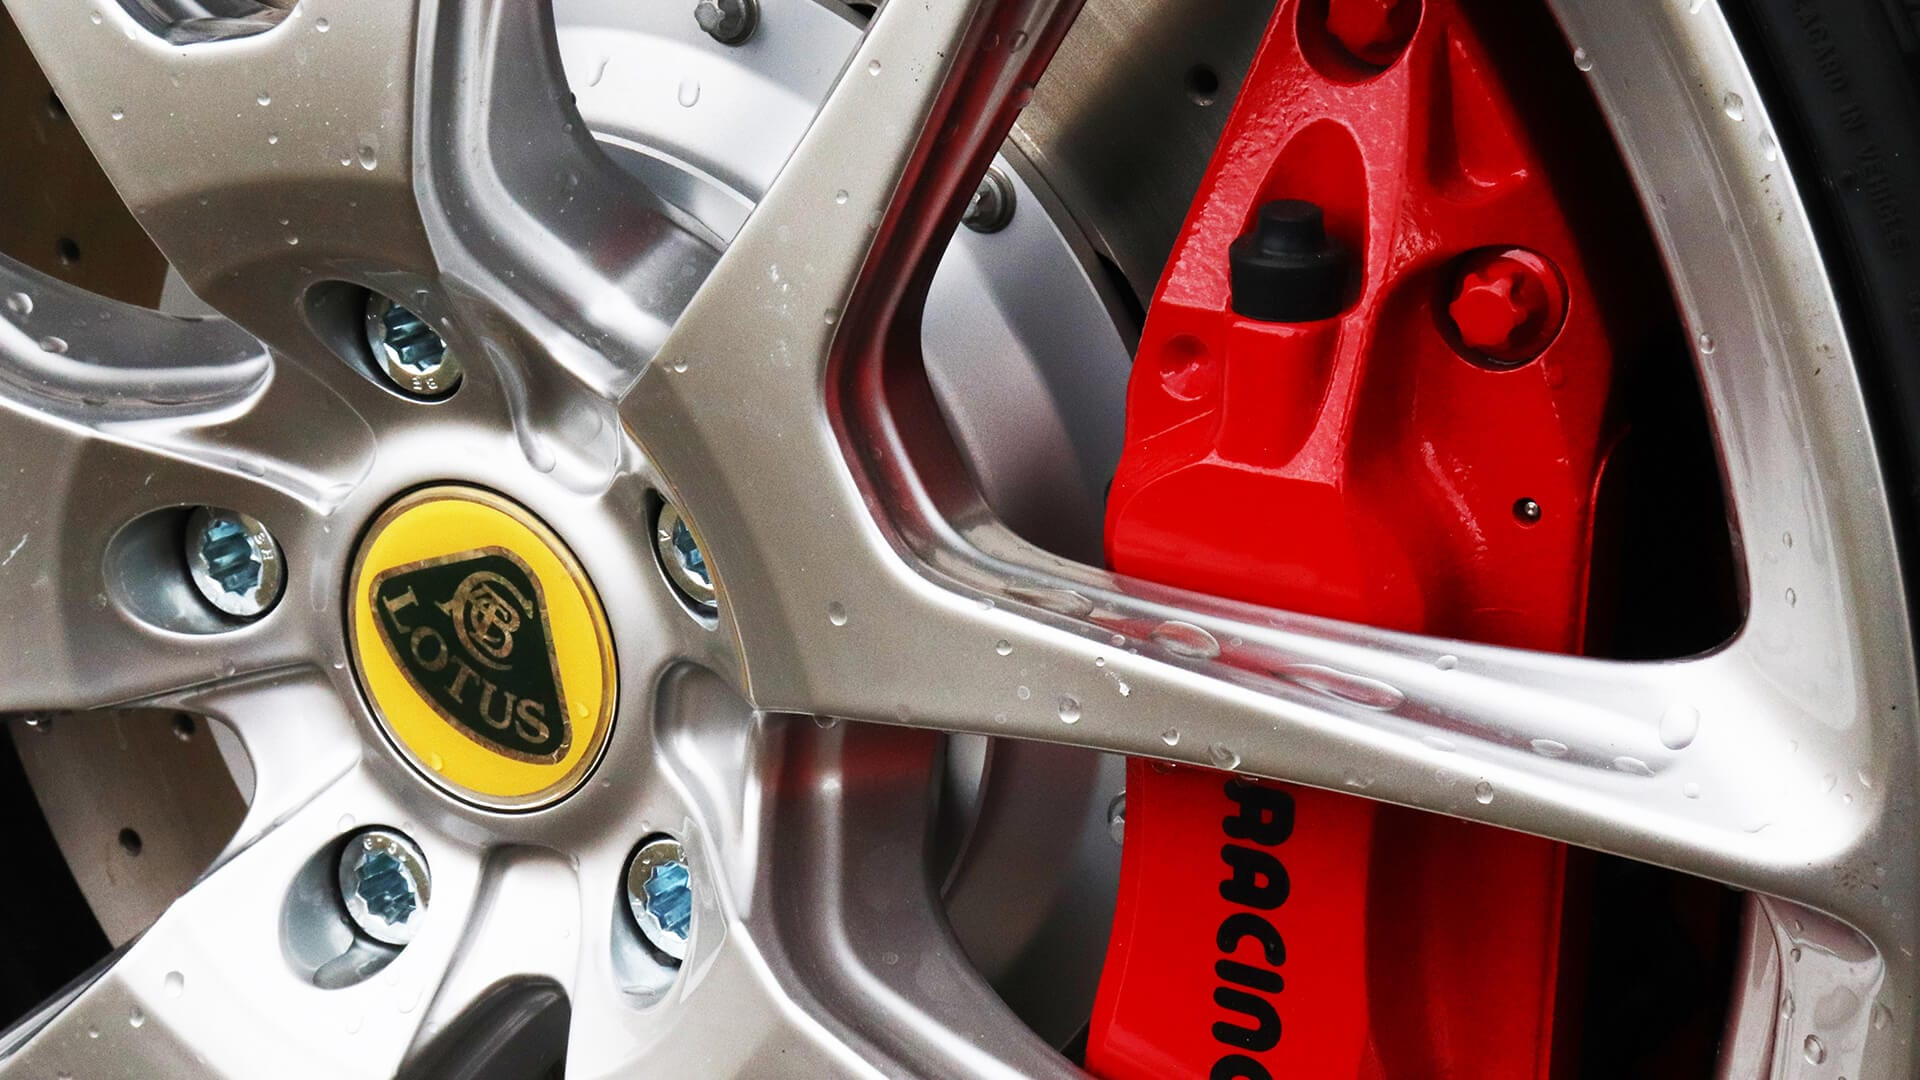 Close up view of a Lotus Evora alloy wheel with red caliper.